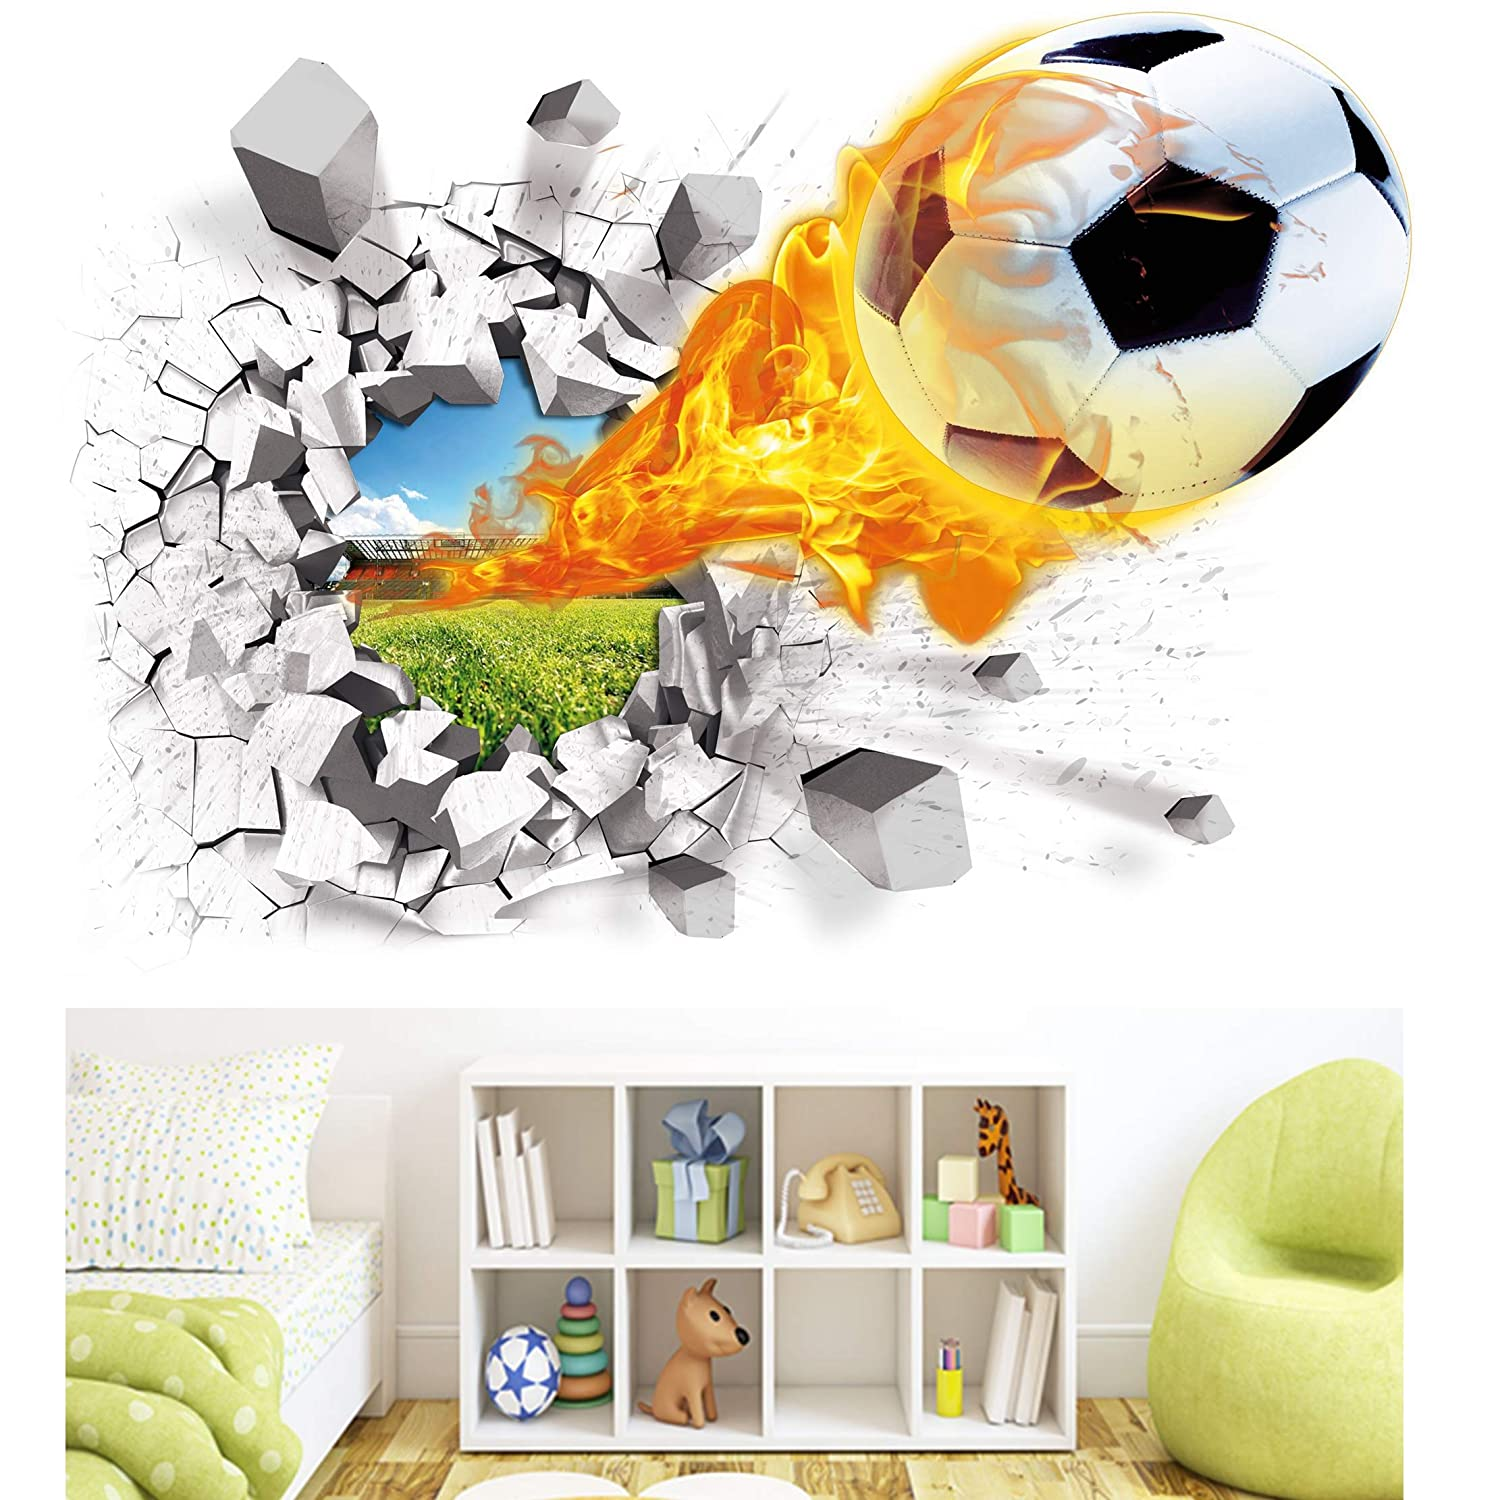 Soccer Wall Decals 3D Flame Soccer Ball Wall Decor Art Removable Vinyl Soccer Wall Stickers Football Sports Wall Murals Decorations Basketball D/écor Poster as Birthday Gifts Kids/' Rooms and Nursery Test-Rite 354756